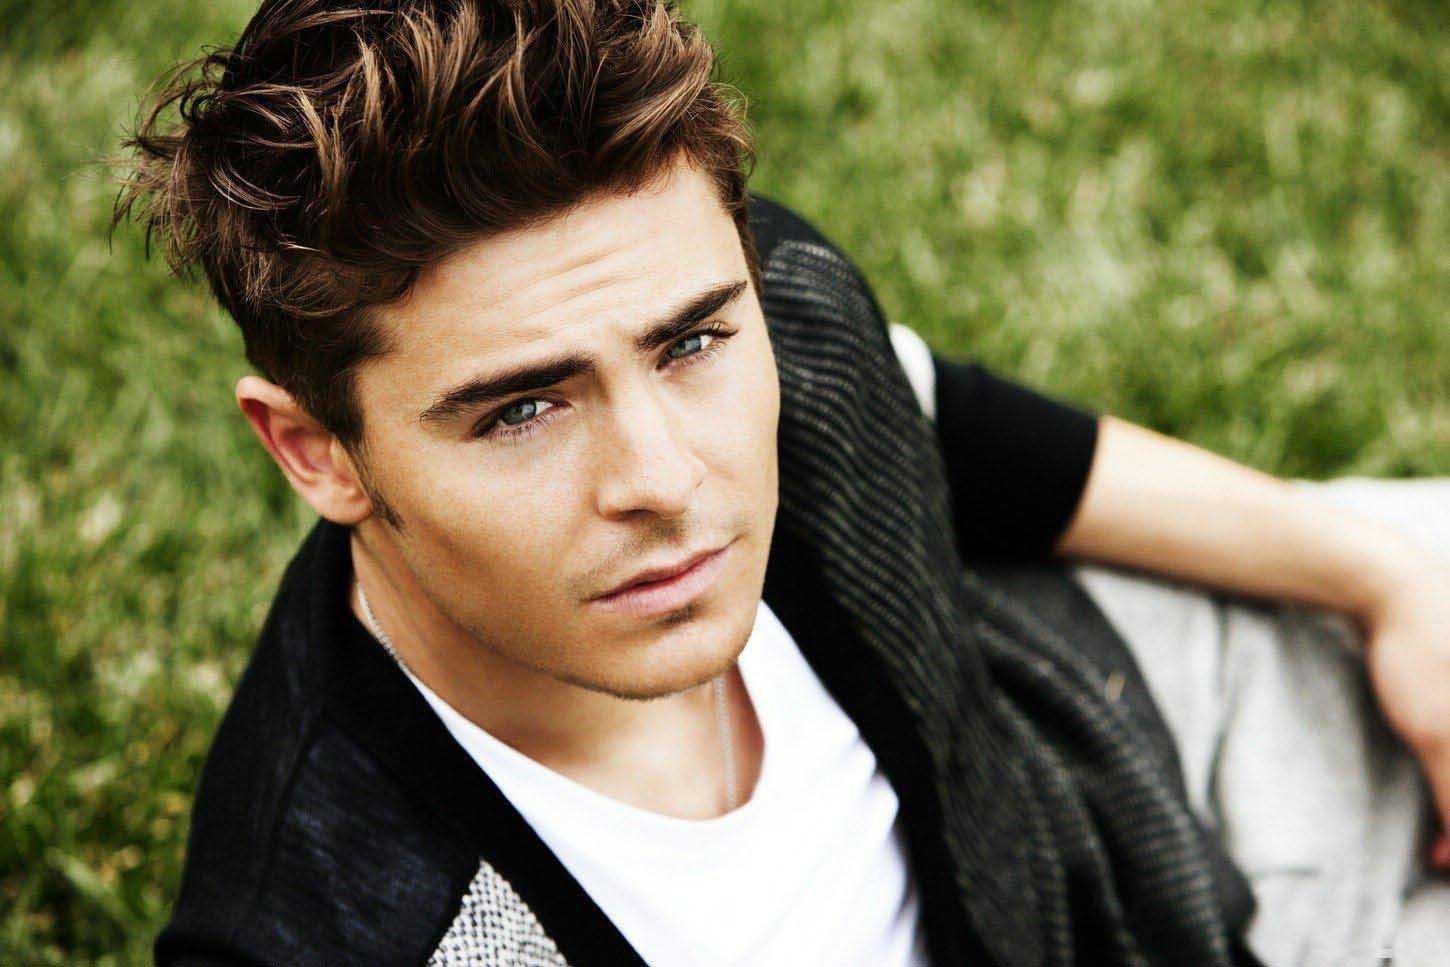 Zac Efron Hd Wallpapers For Desktop Download